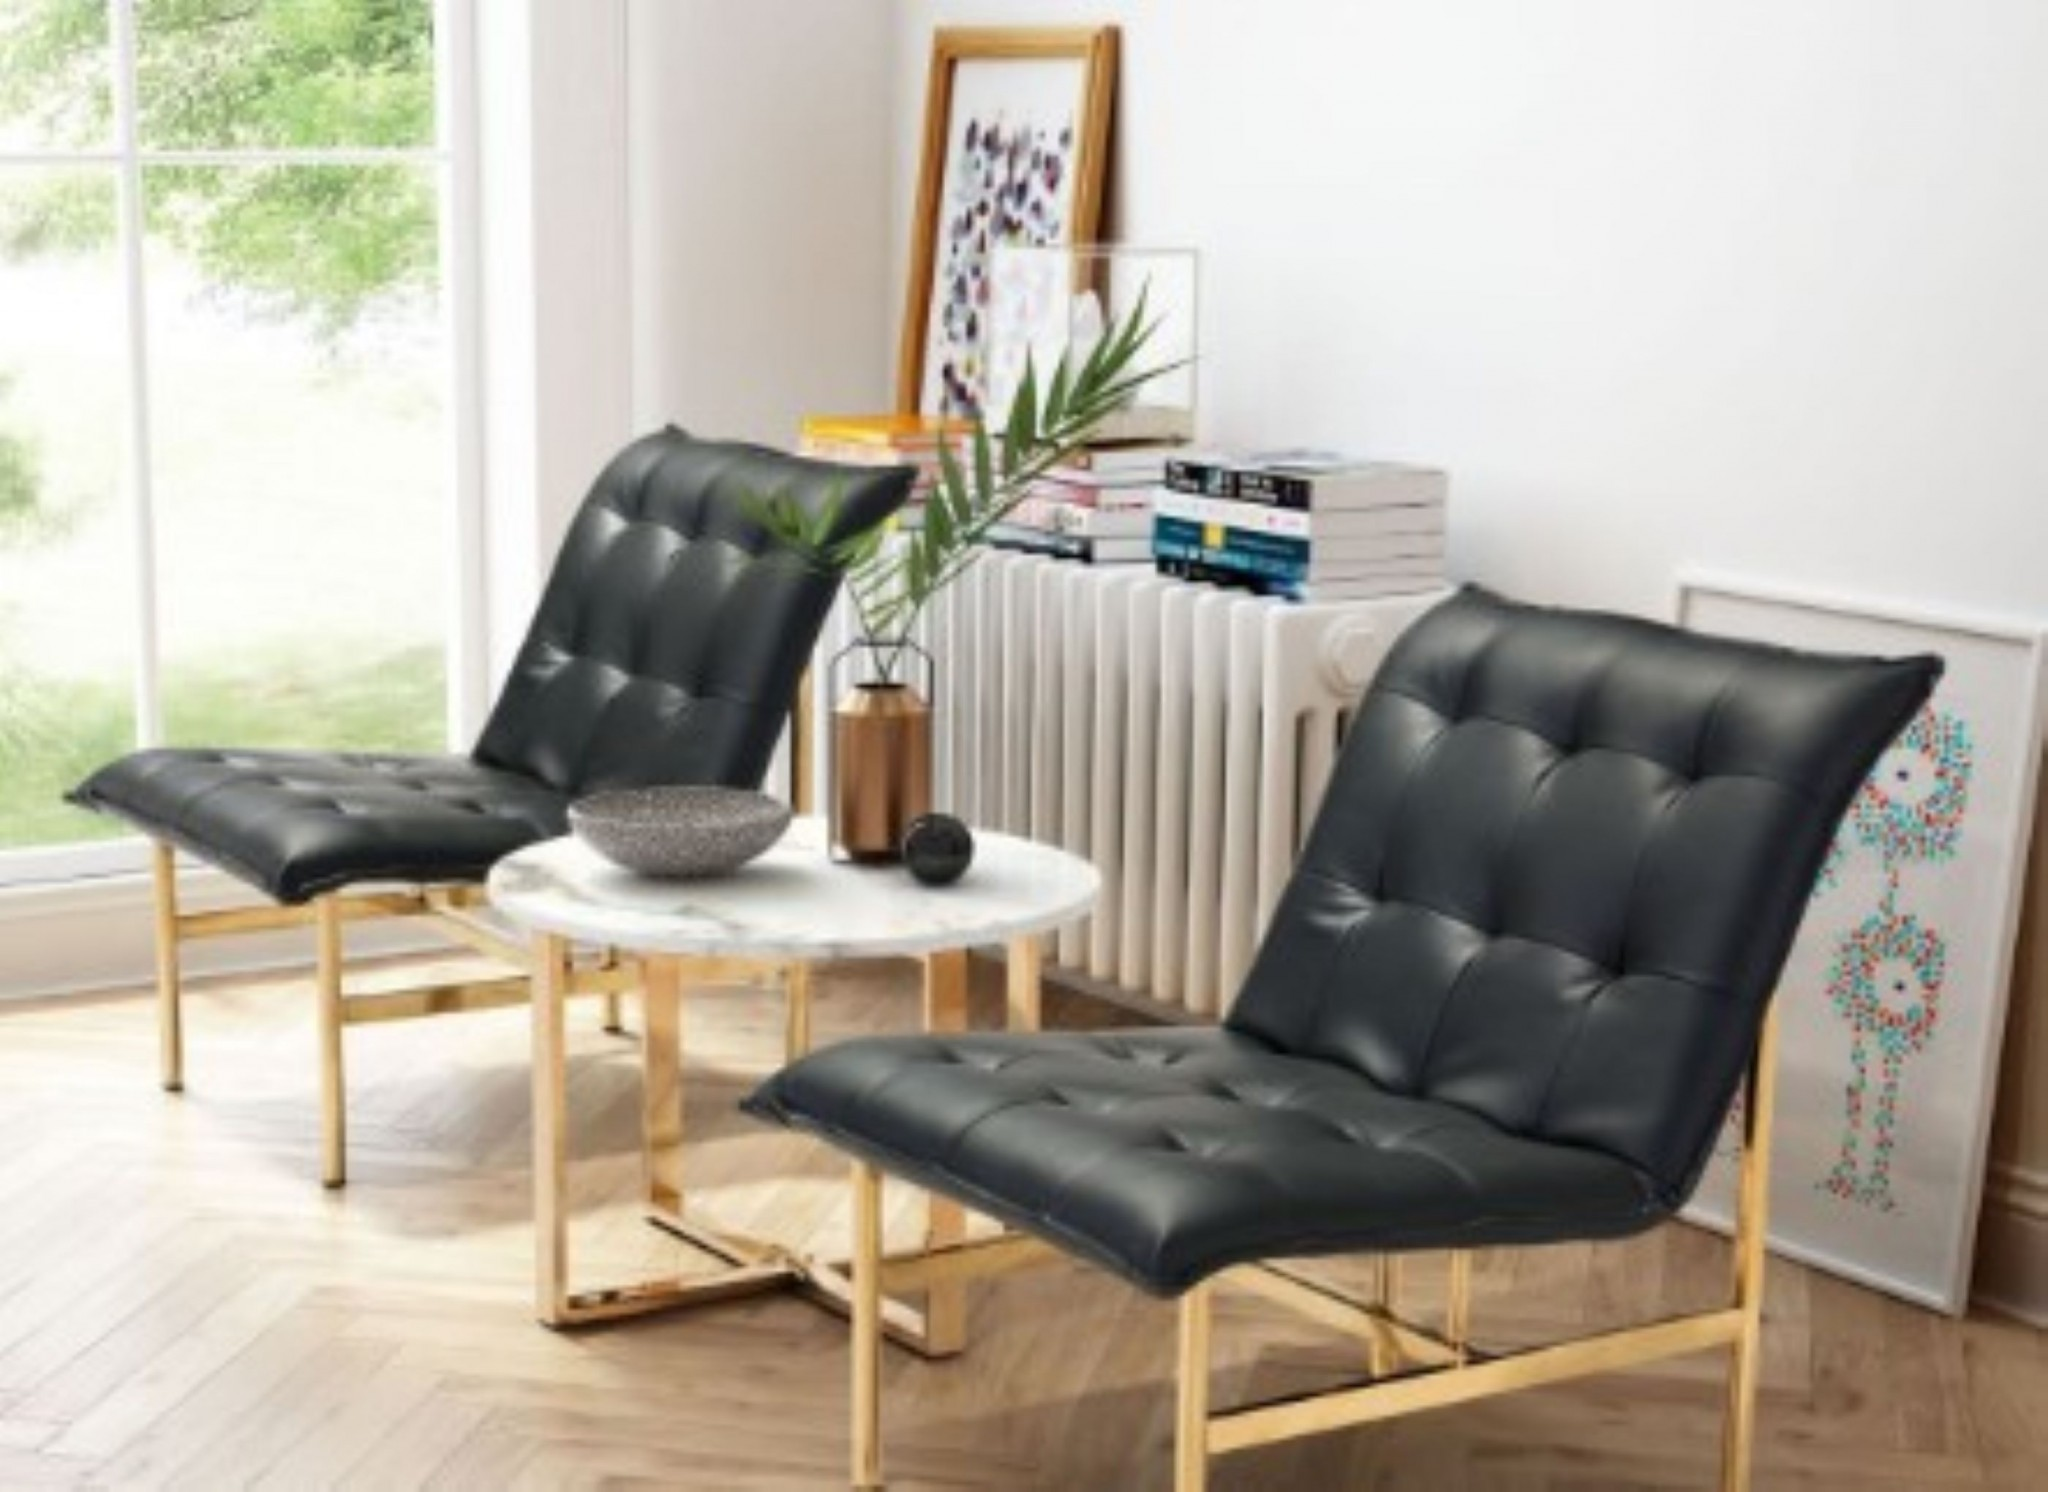 Chair Black & Gold - Leatherette Stainless Steel